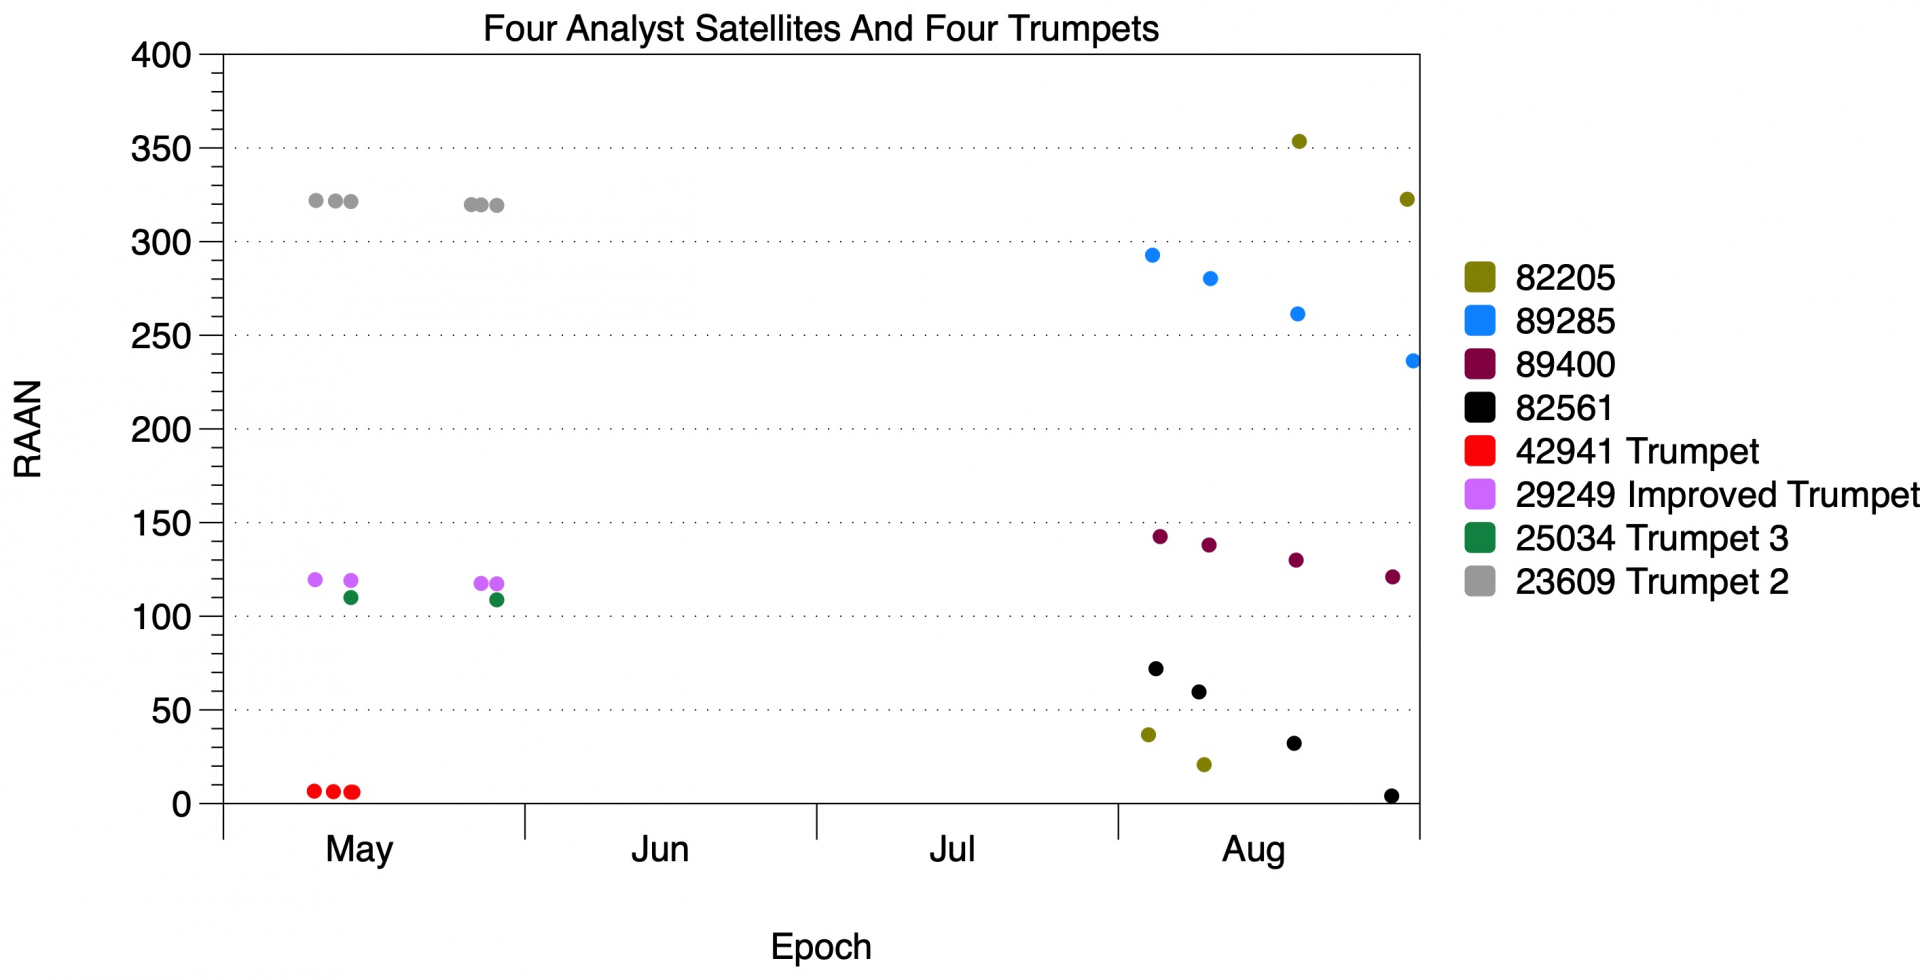 four analyst satellites and four trumpets